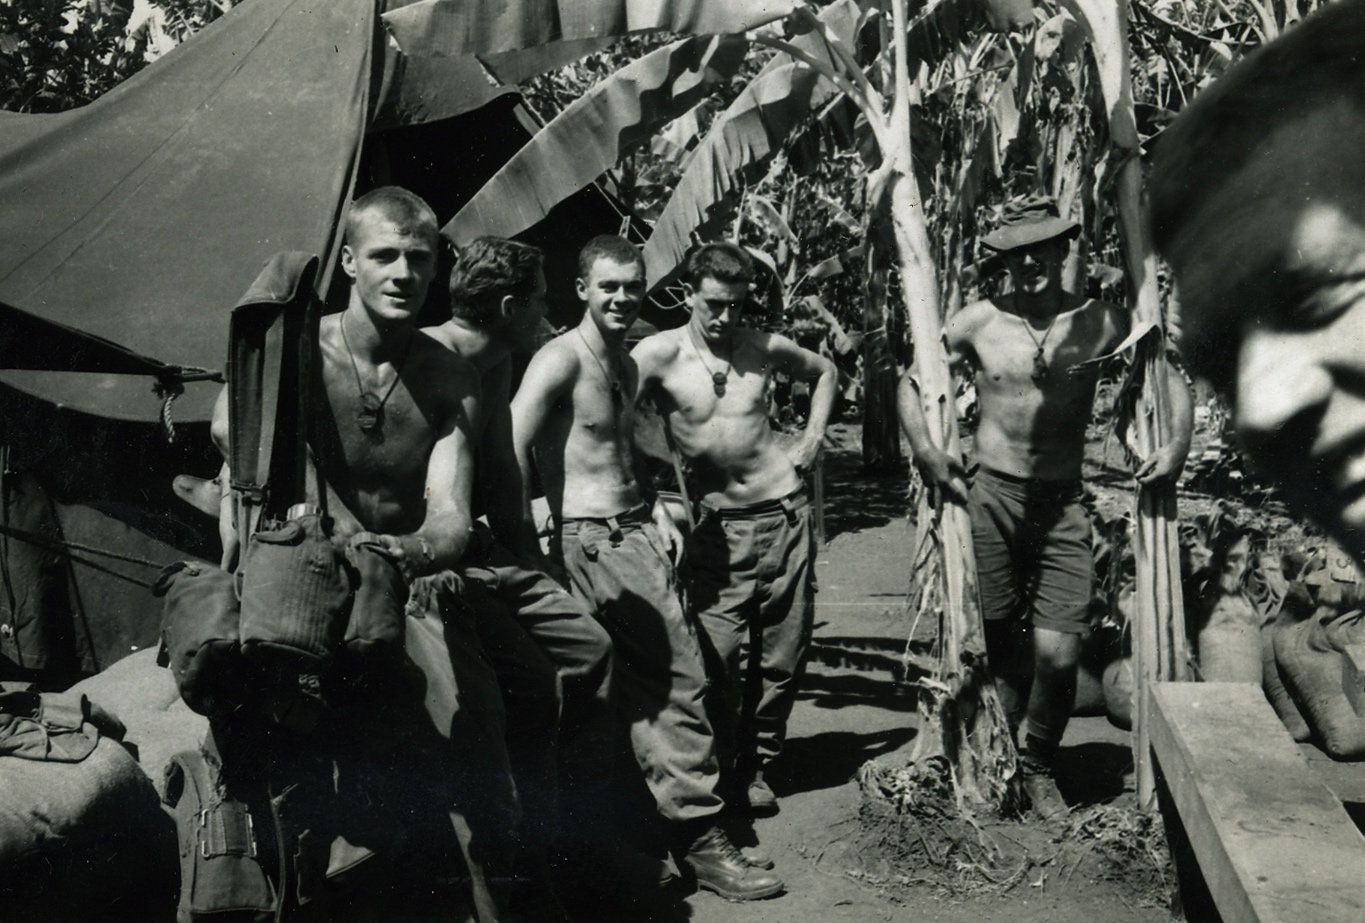 (8) MILLER, David John (Army 4718833), relaxing in 10 Platoon lines